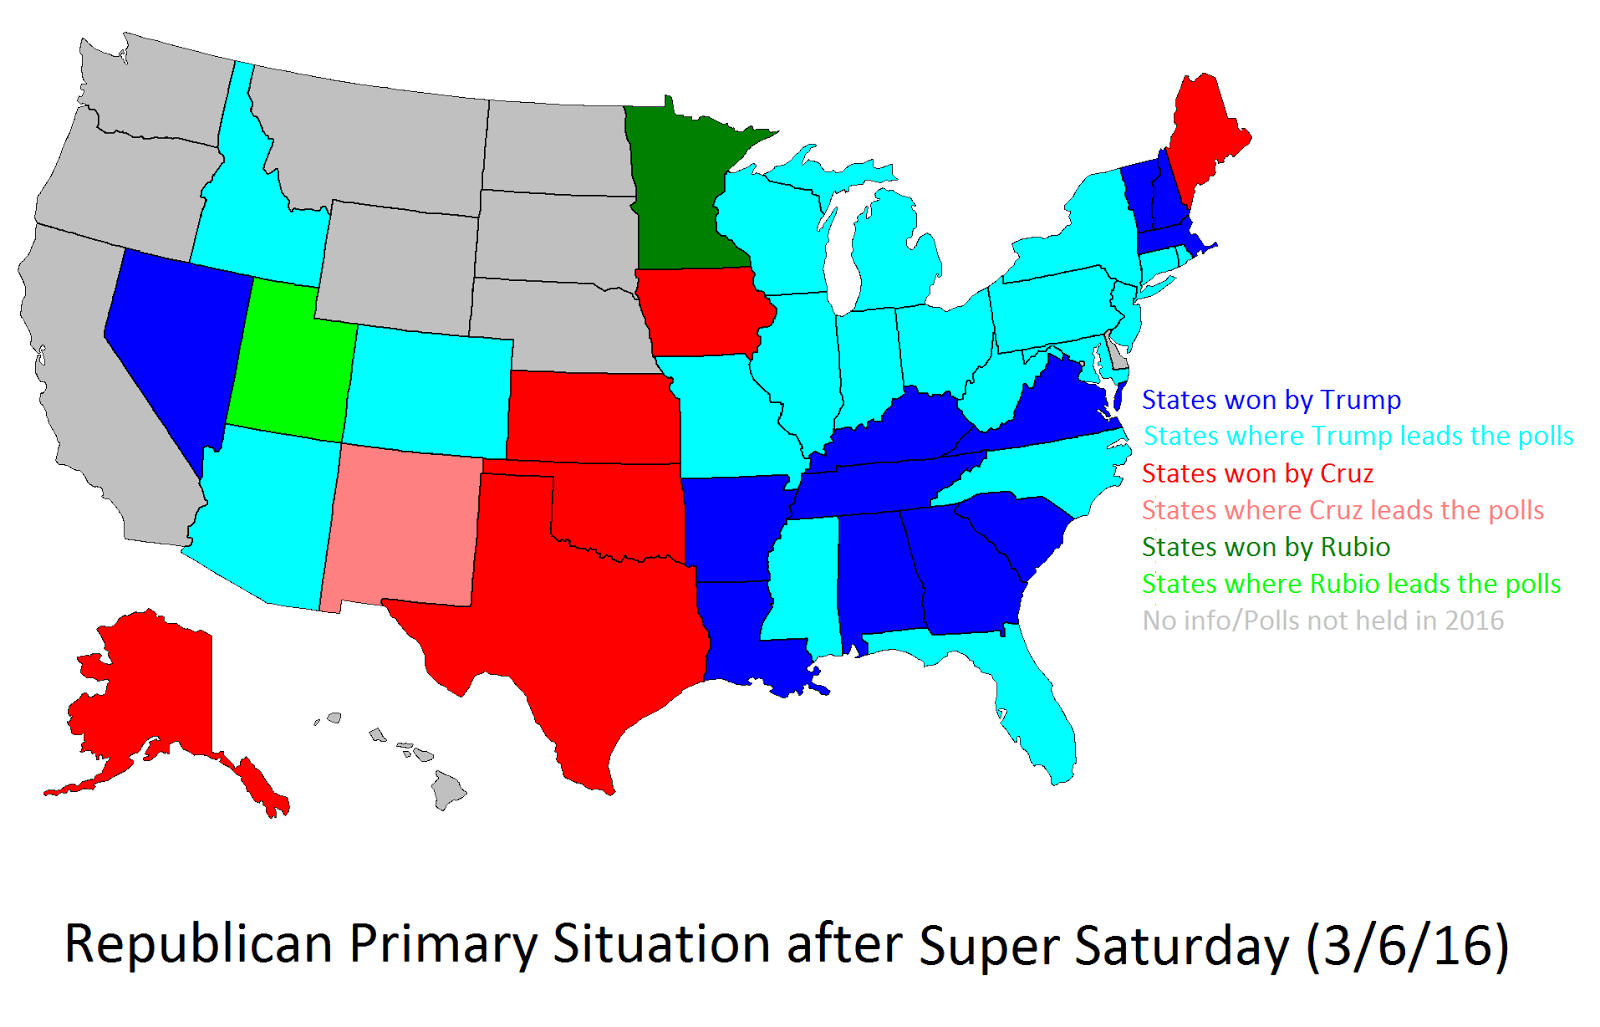 Republican Primary Situation after Super Saturday